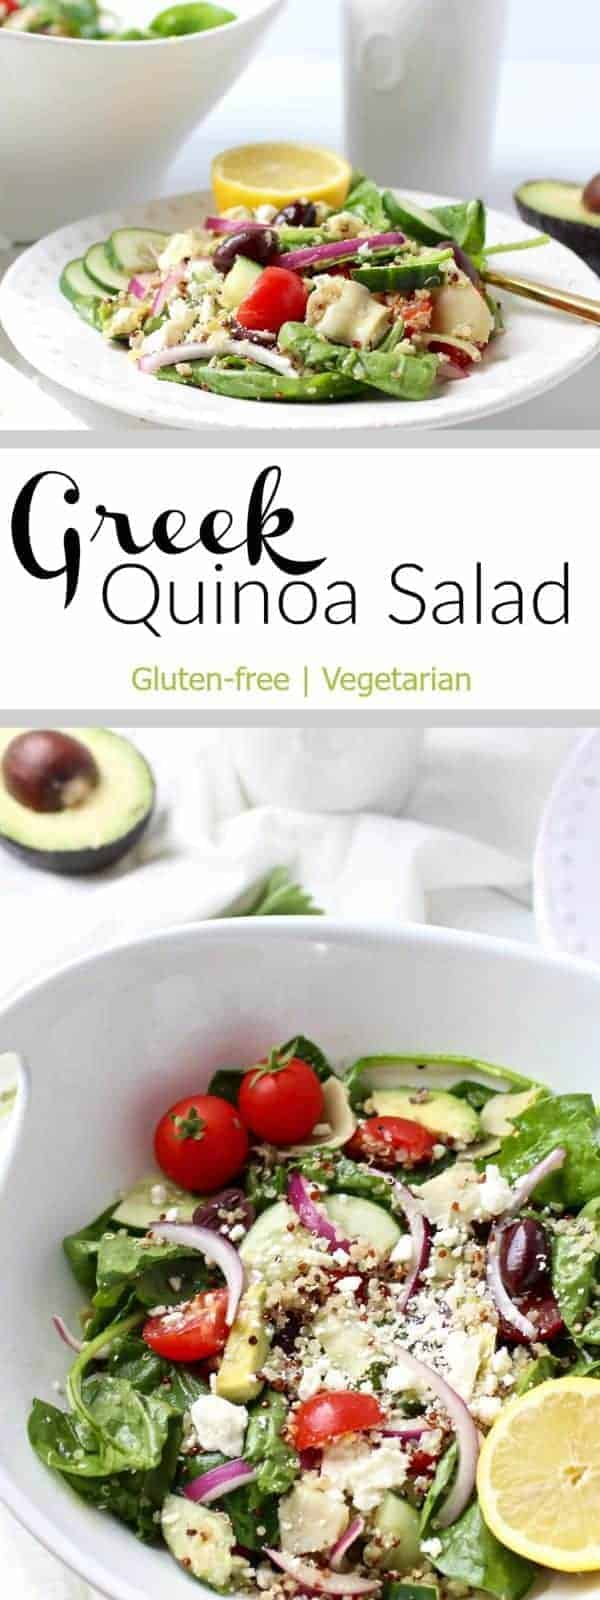 This gluten-free Greek Quinoa Salad is made with our favorite Extra Virgin Avocado Oil. It's perfect for lunch packing, end of summer picnics and holiday side-dishes | therealfoodrds.com | Gluten-free | Vegetarian